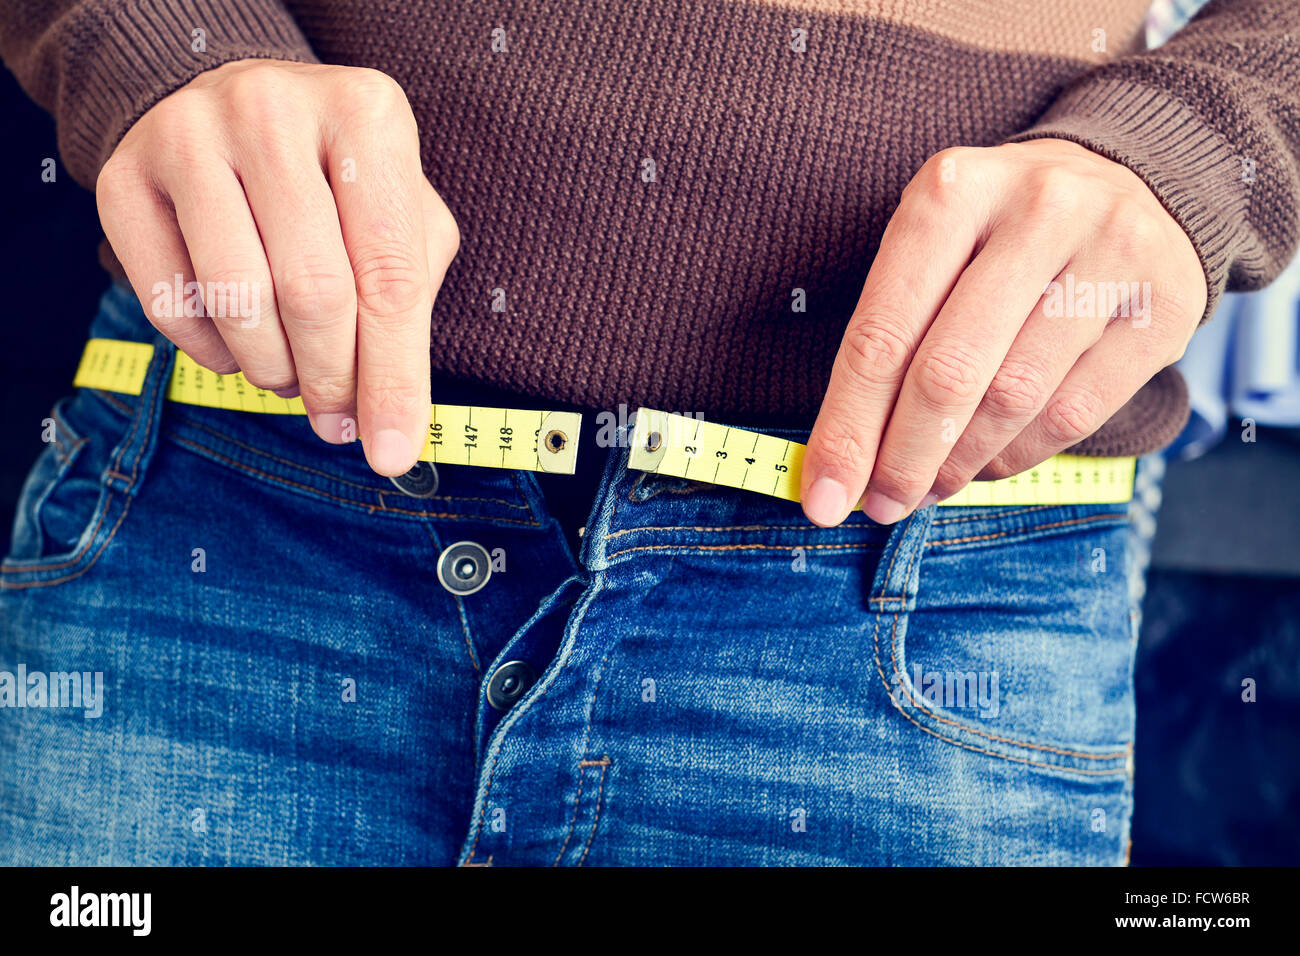 a young man with a measuring tape as a belt tries to fasten his trousers, because of the weight gain - Stock Image